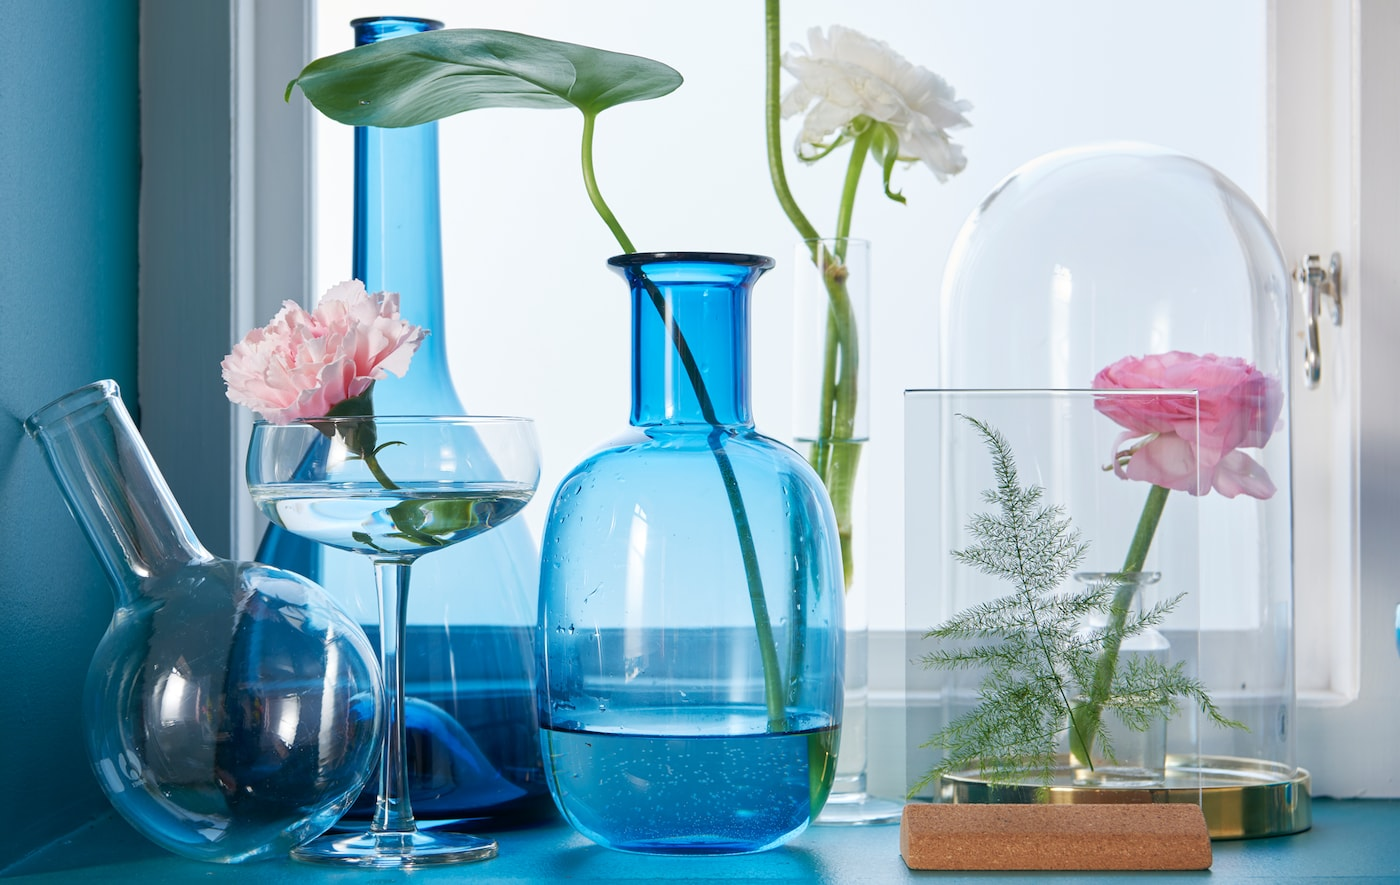 Several different shaped blue and clear glass vases and an IKEA BEGÅVNING glass dome on a window sill.